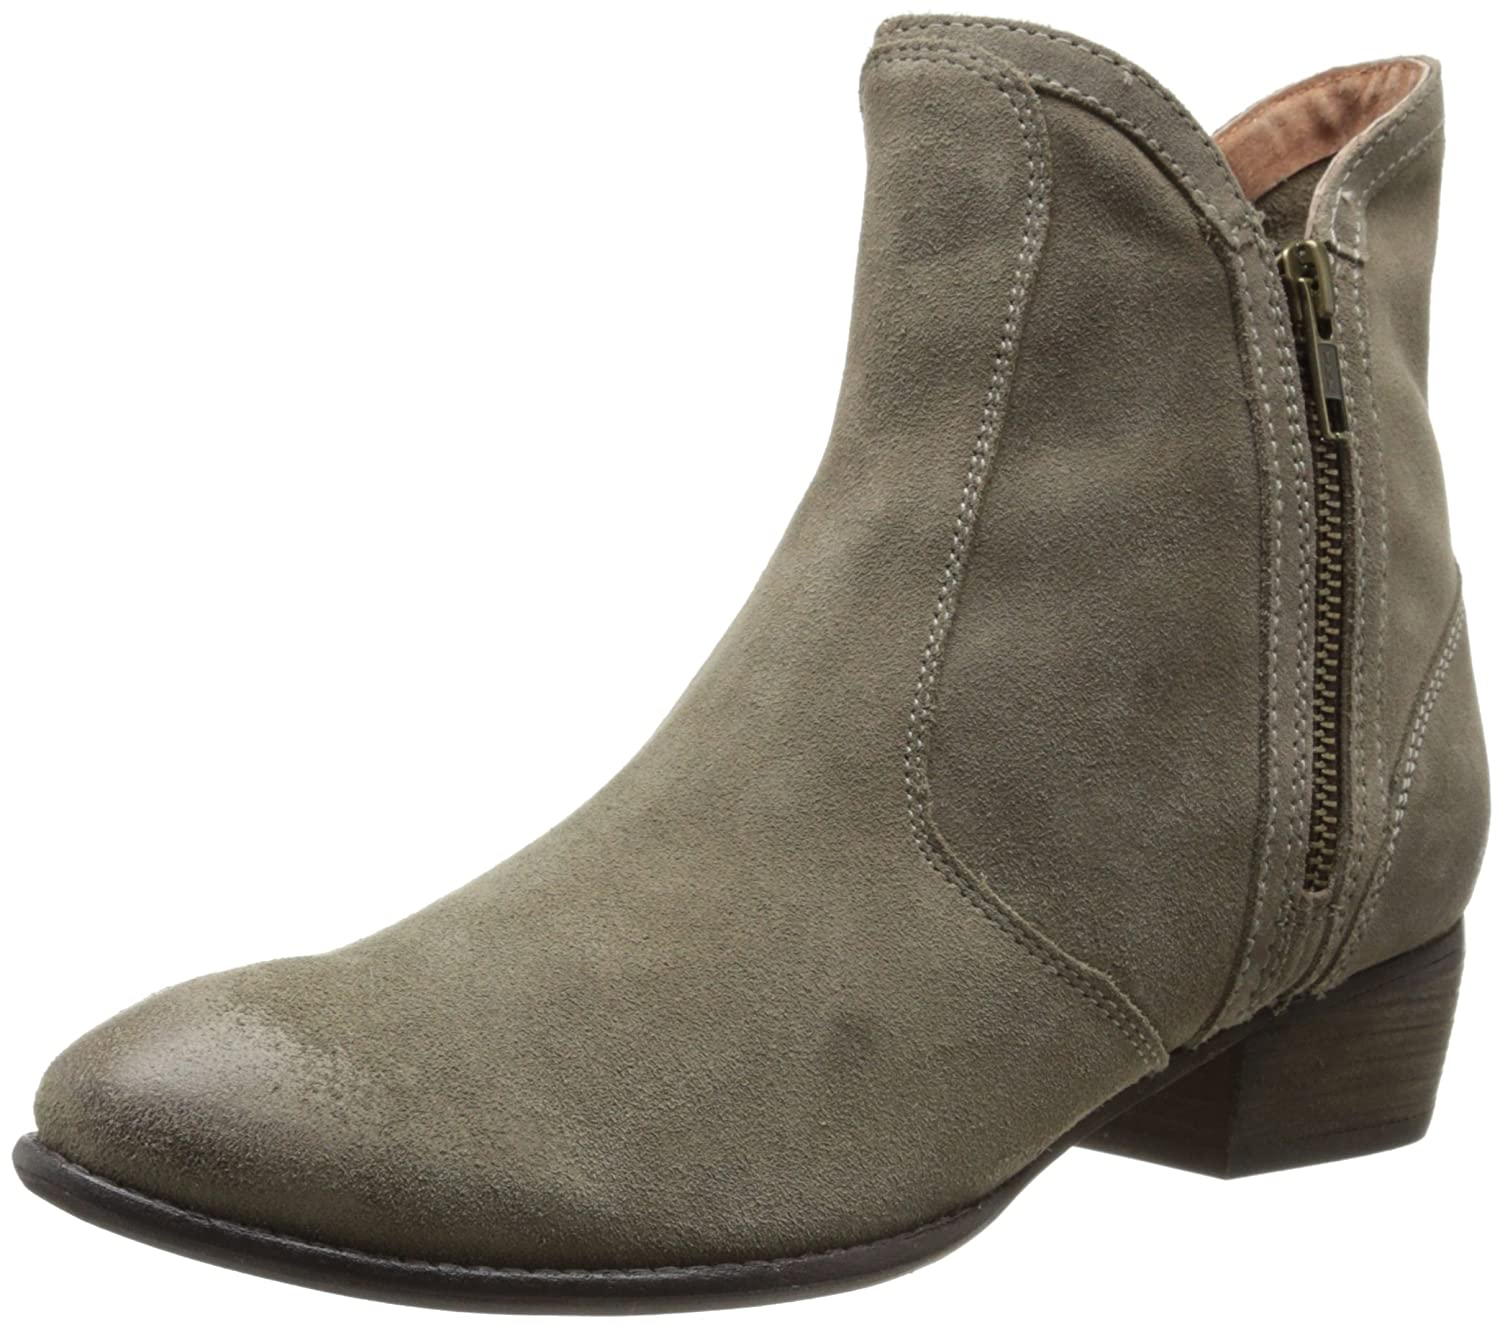 Seychelles Women's Lucky Penny Bootie B00JGQH74G 10 B(M) US|Taupe Suede